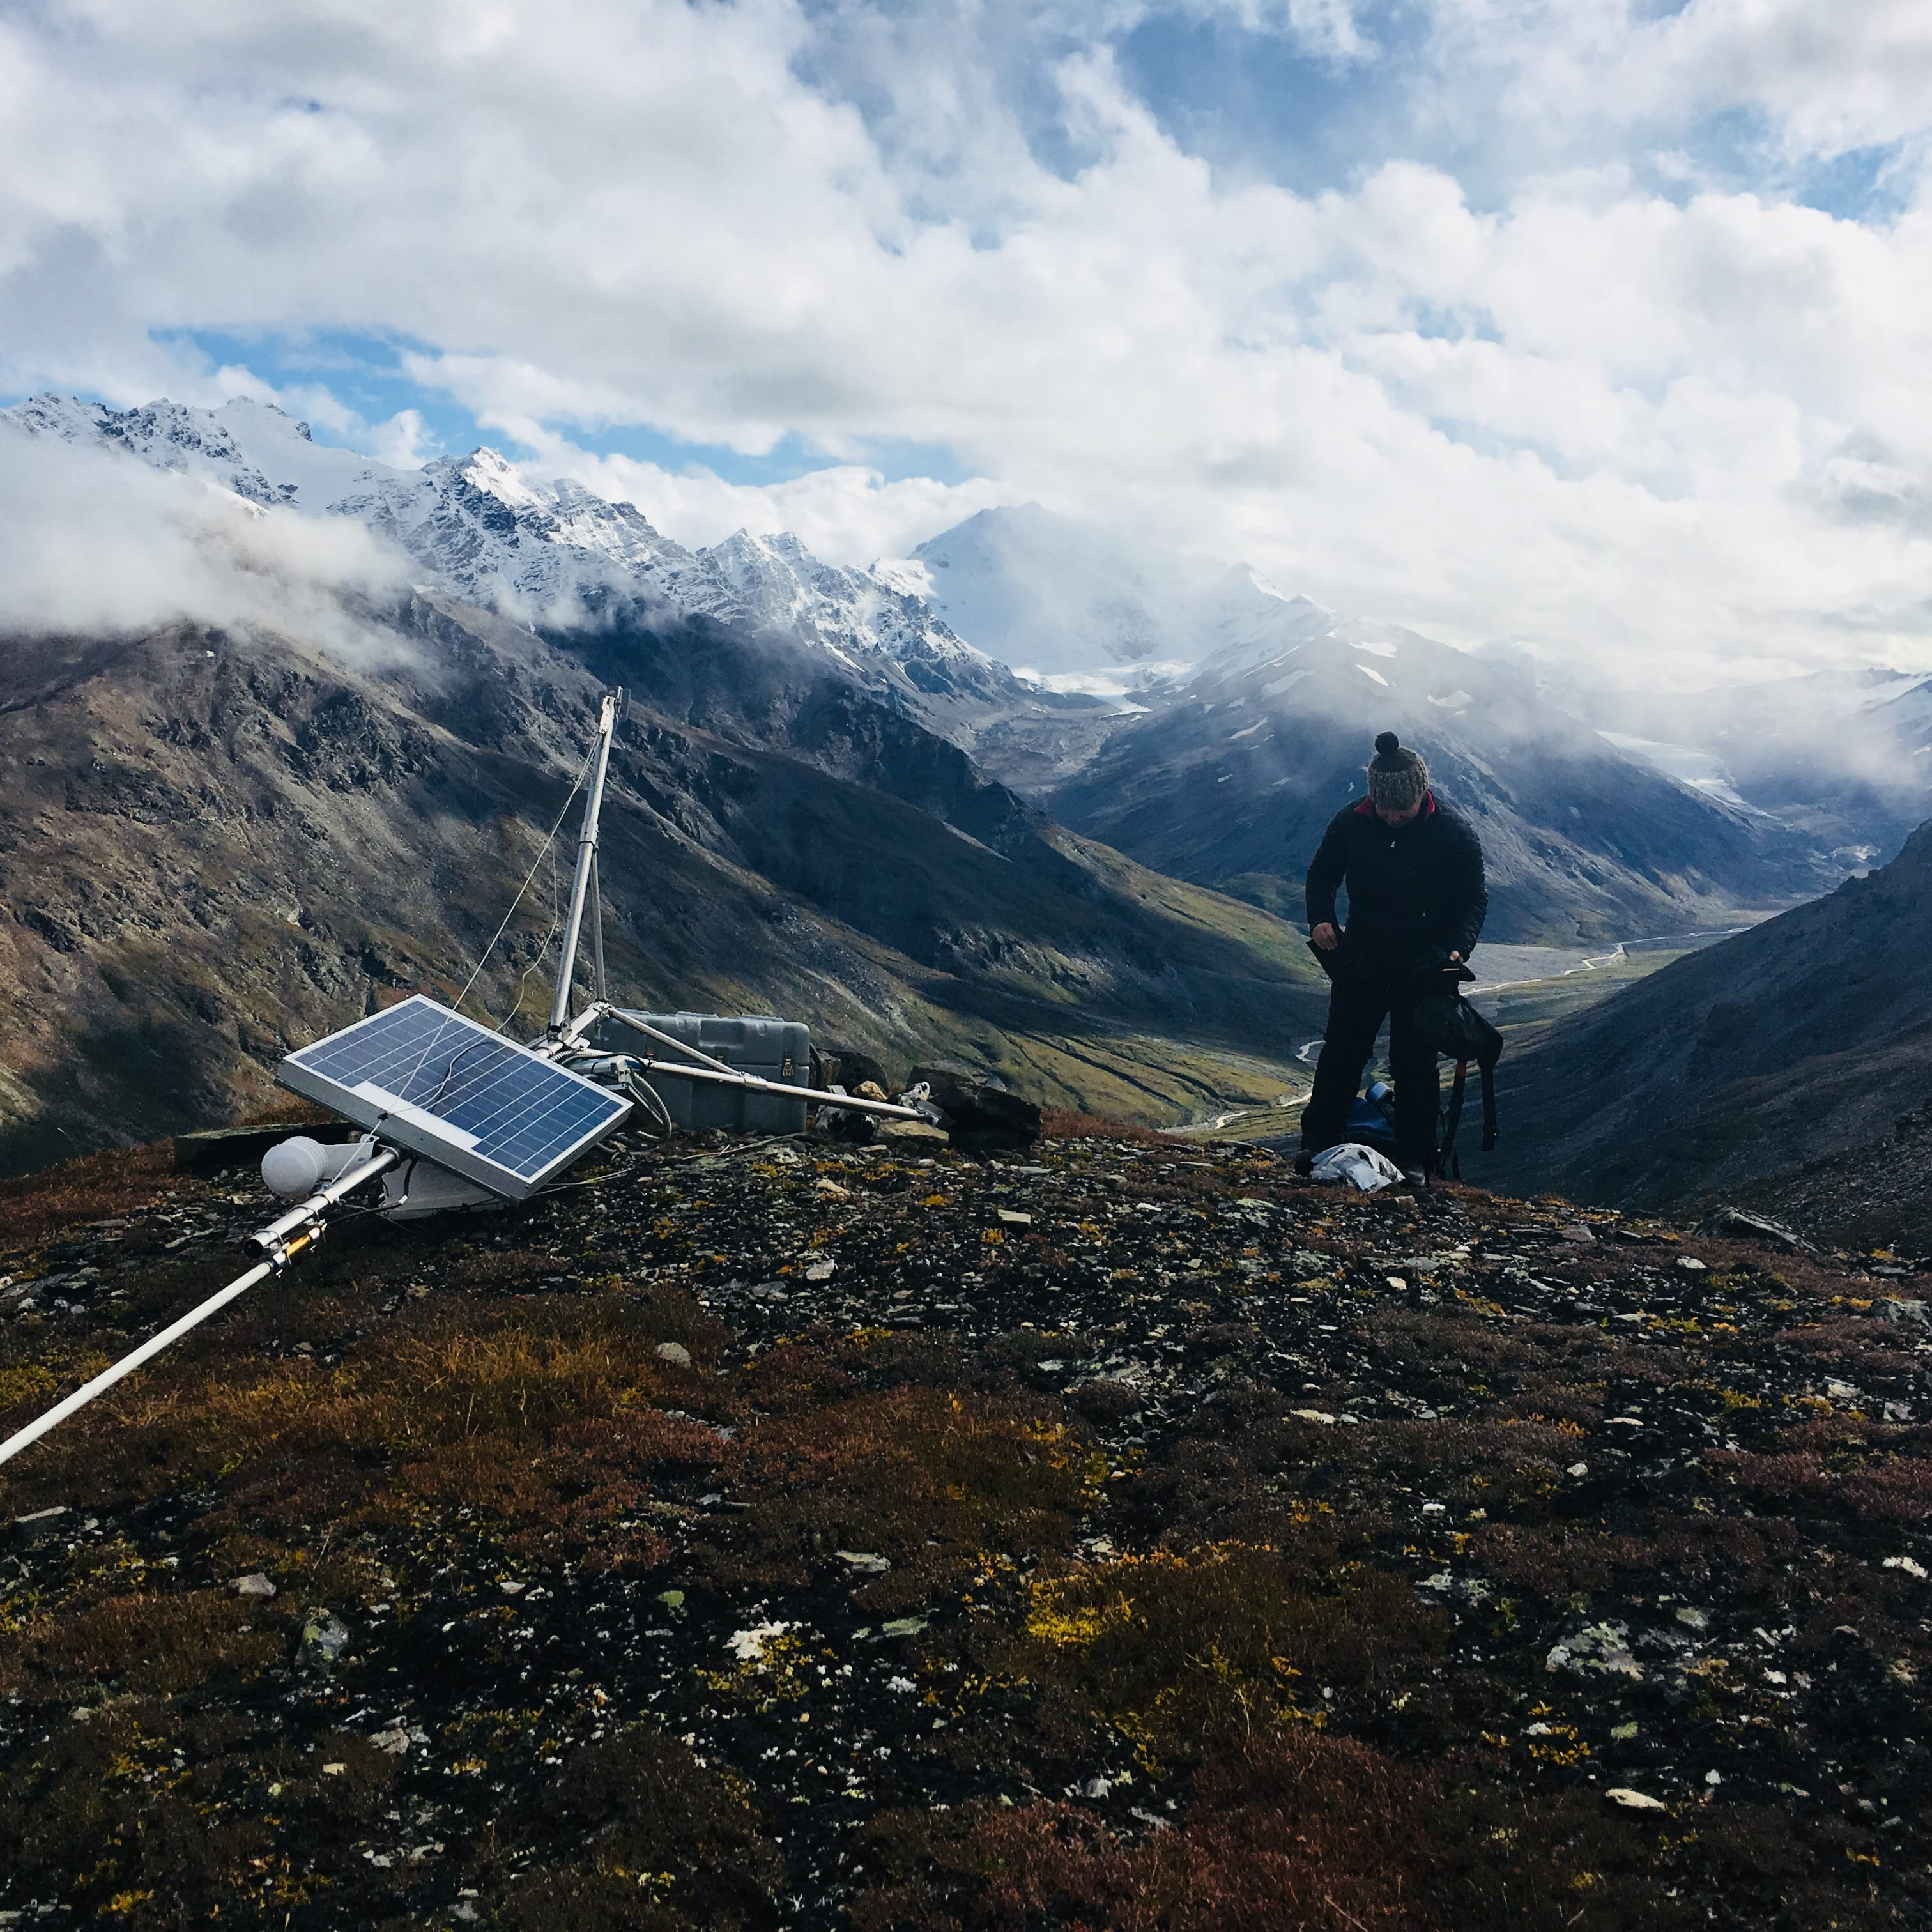 Research Professional Emily Youcha working on the repeater site, which allows weather data from the Jarvis Glacier meteorological station (1750 meters above sea level) to be transmitted to the cellular network. PC: A. Liljedahl